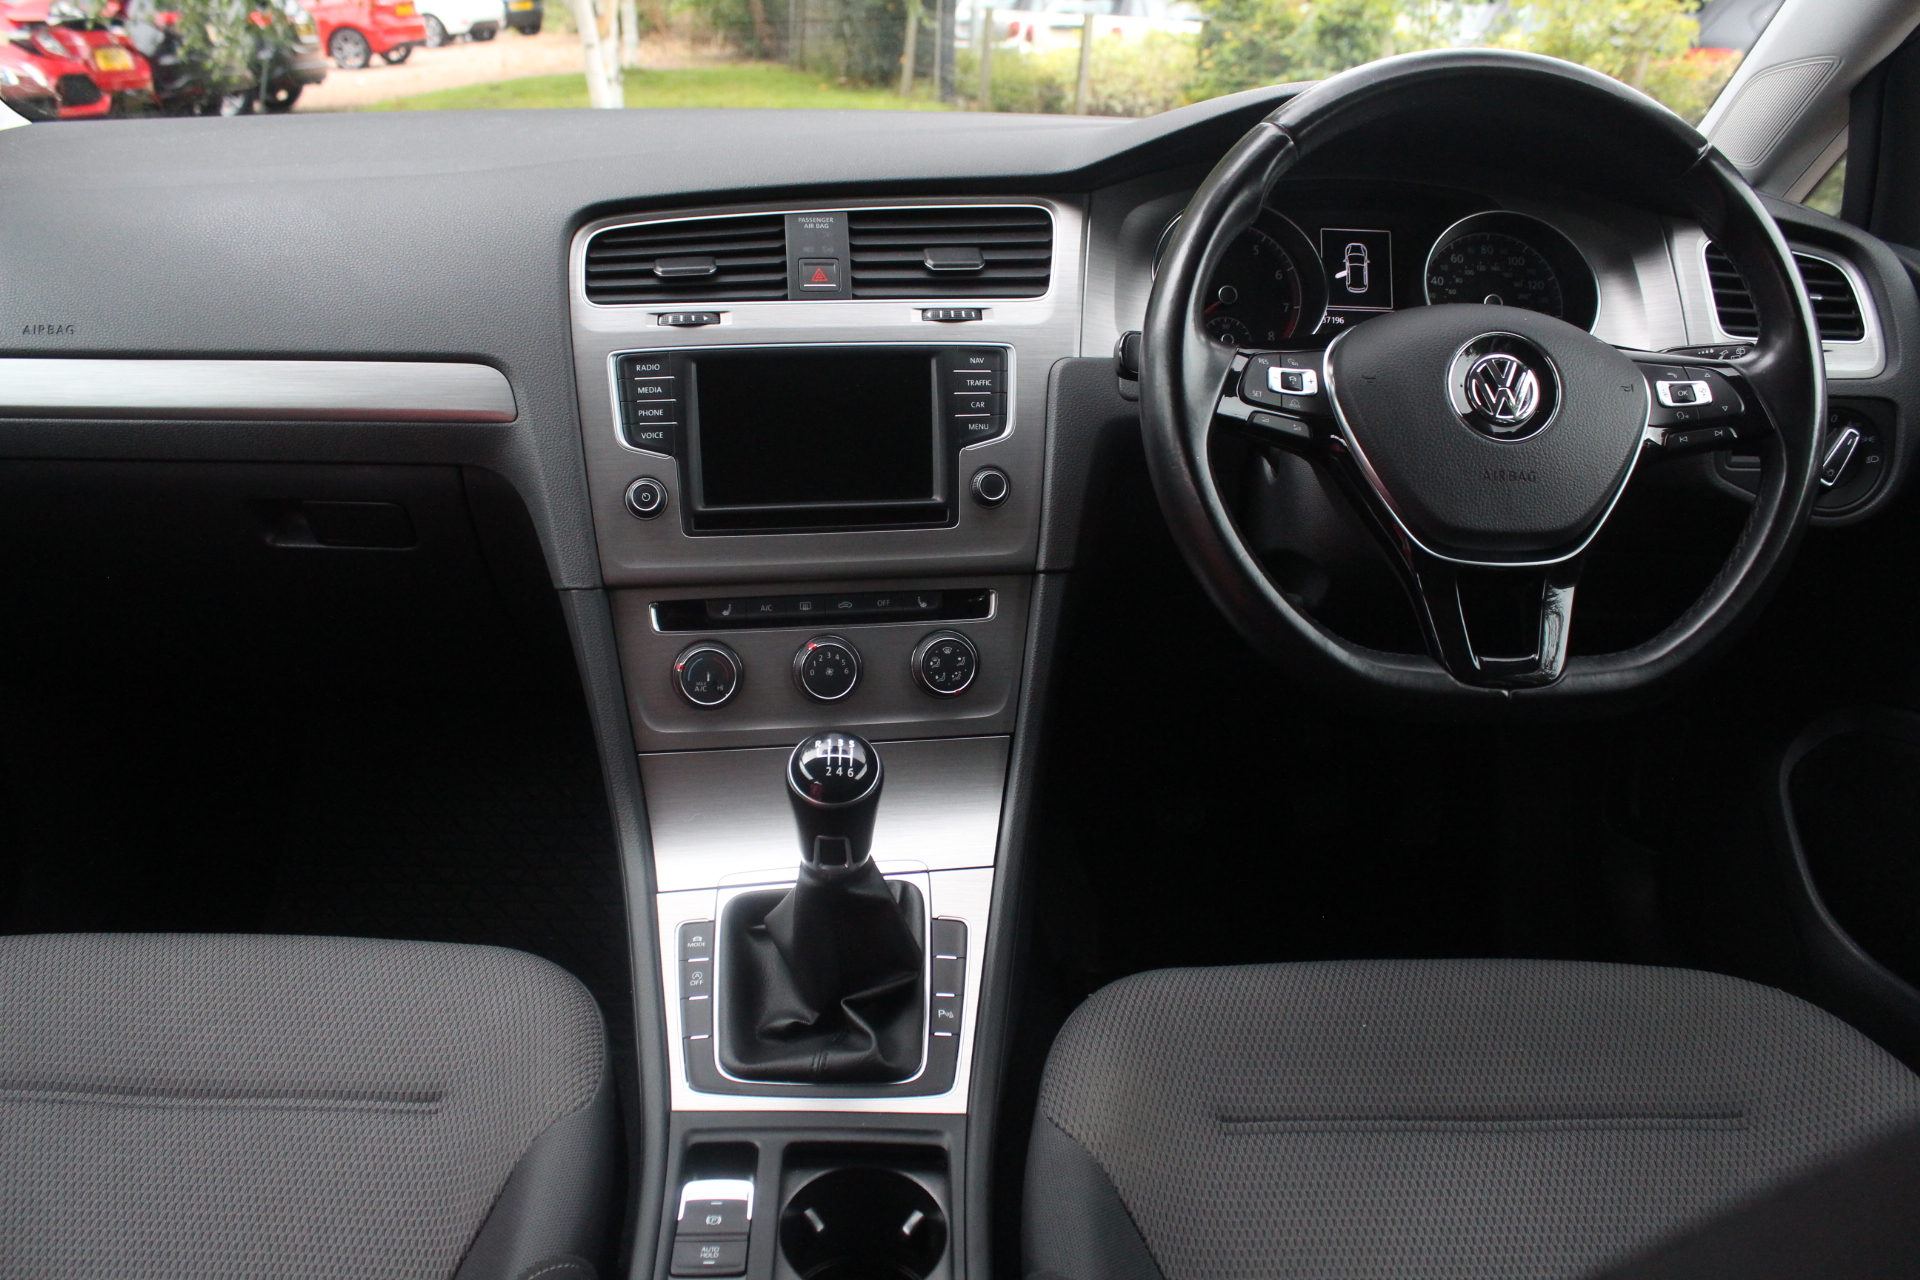 GOLF HATCHBACK 1.4 TSI 125 Match Edition 5dr